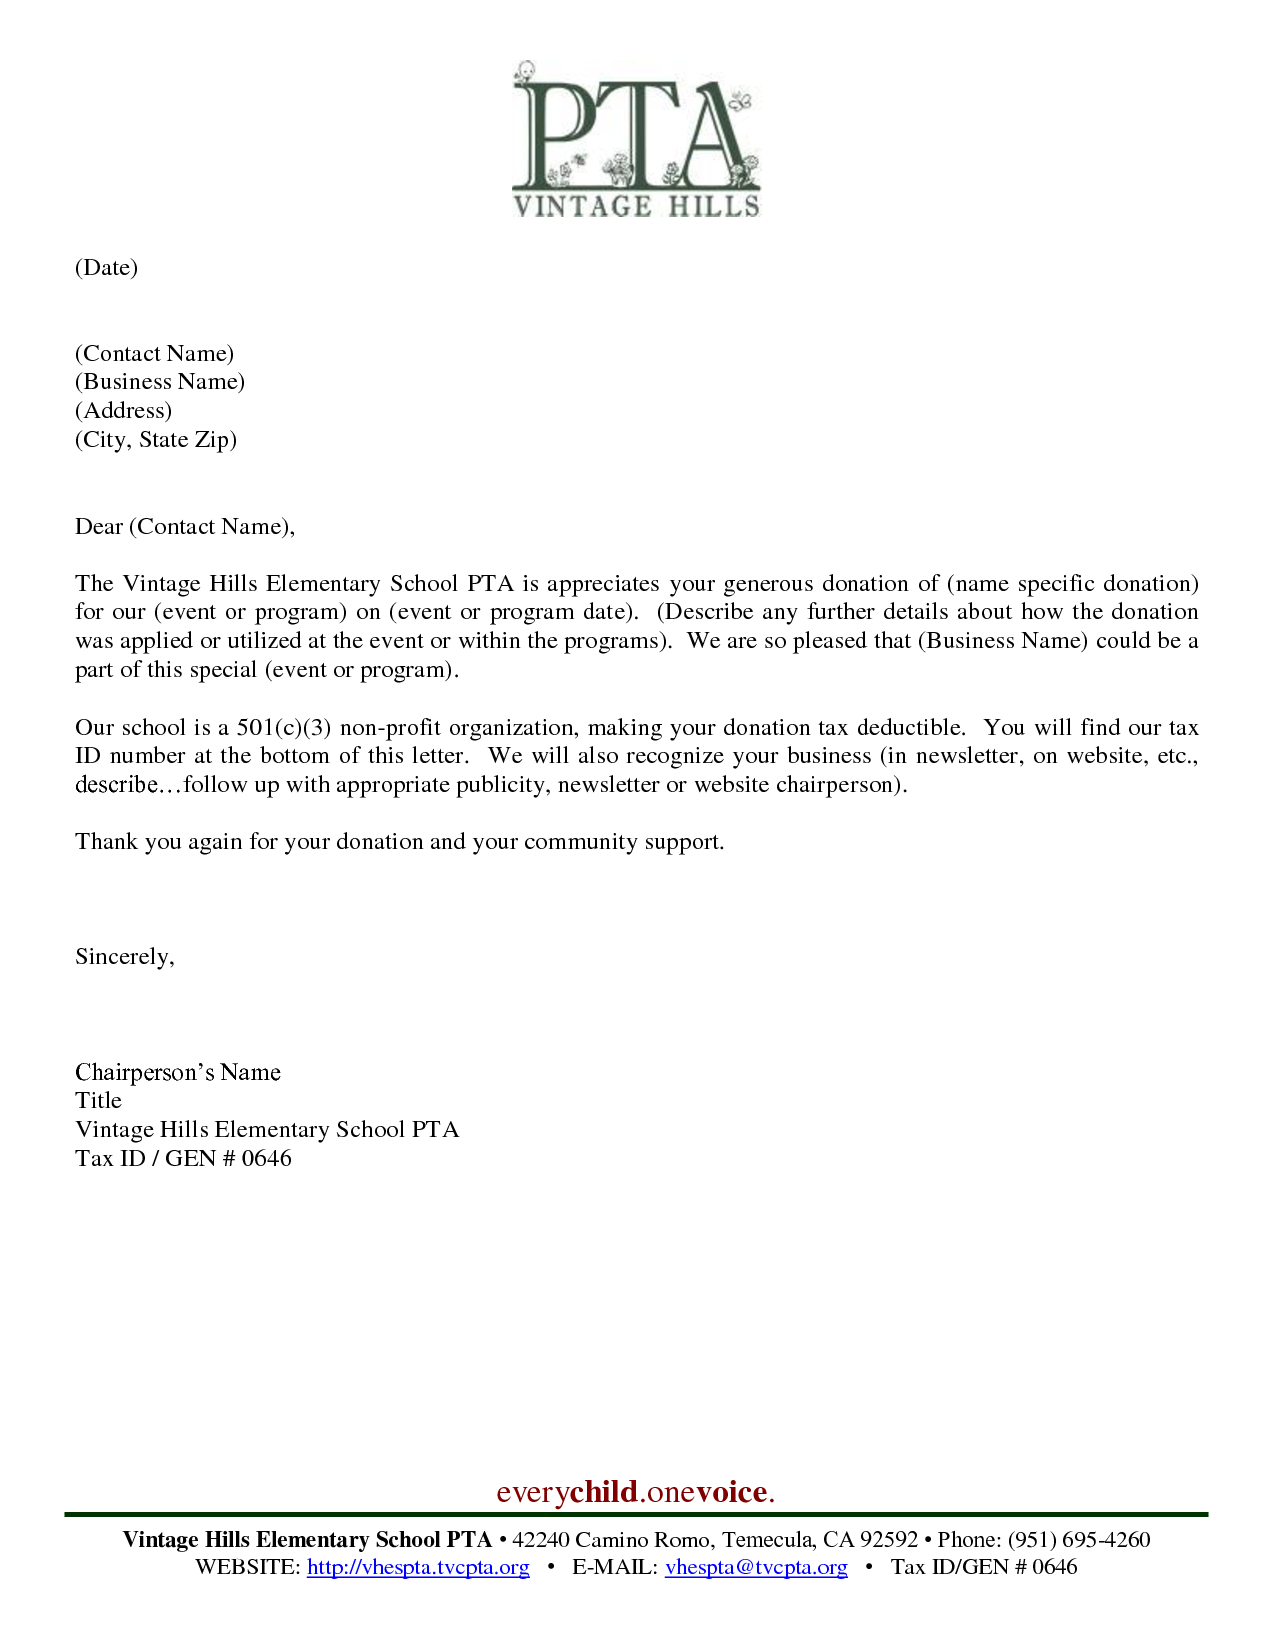 Non Profit Thank You Letter Template - Church Thank You Letter for Donation Samples